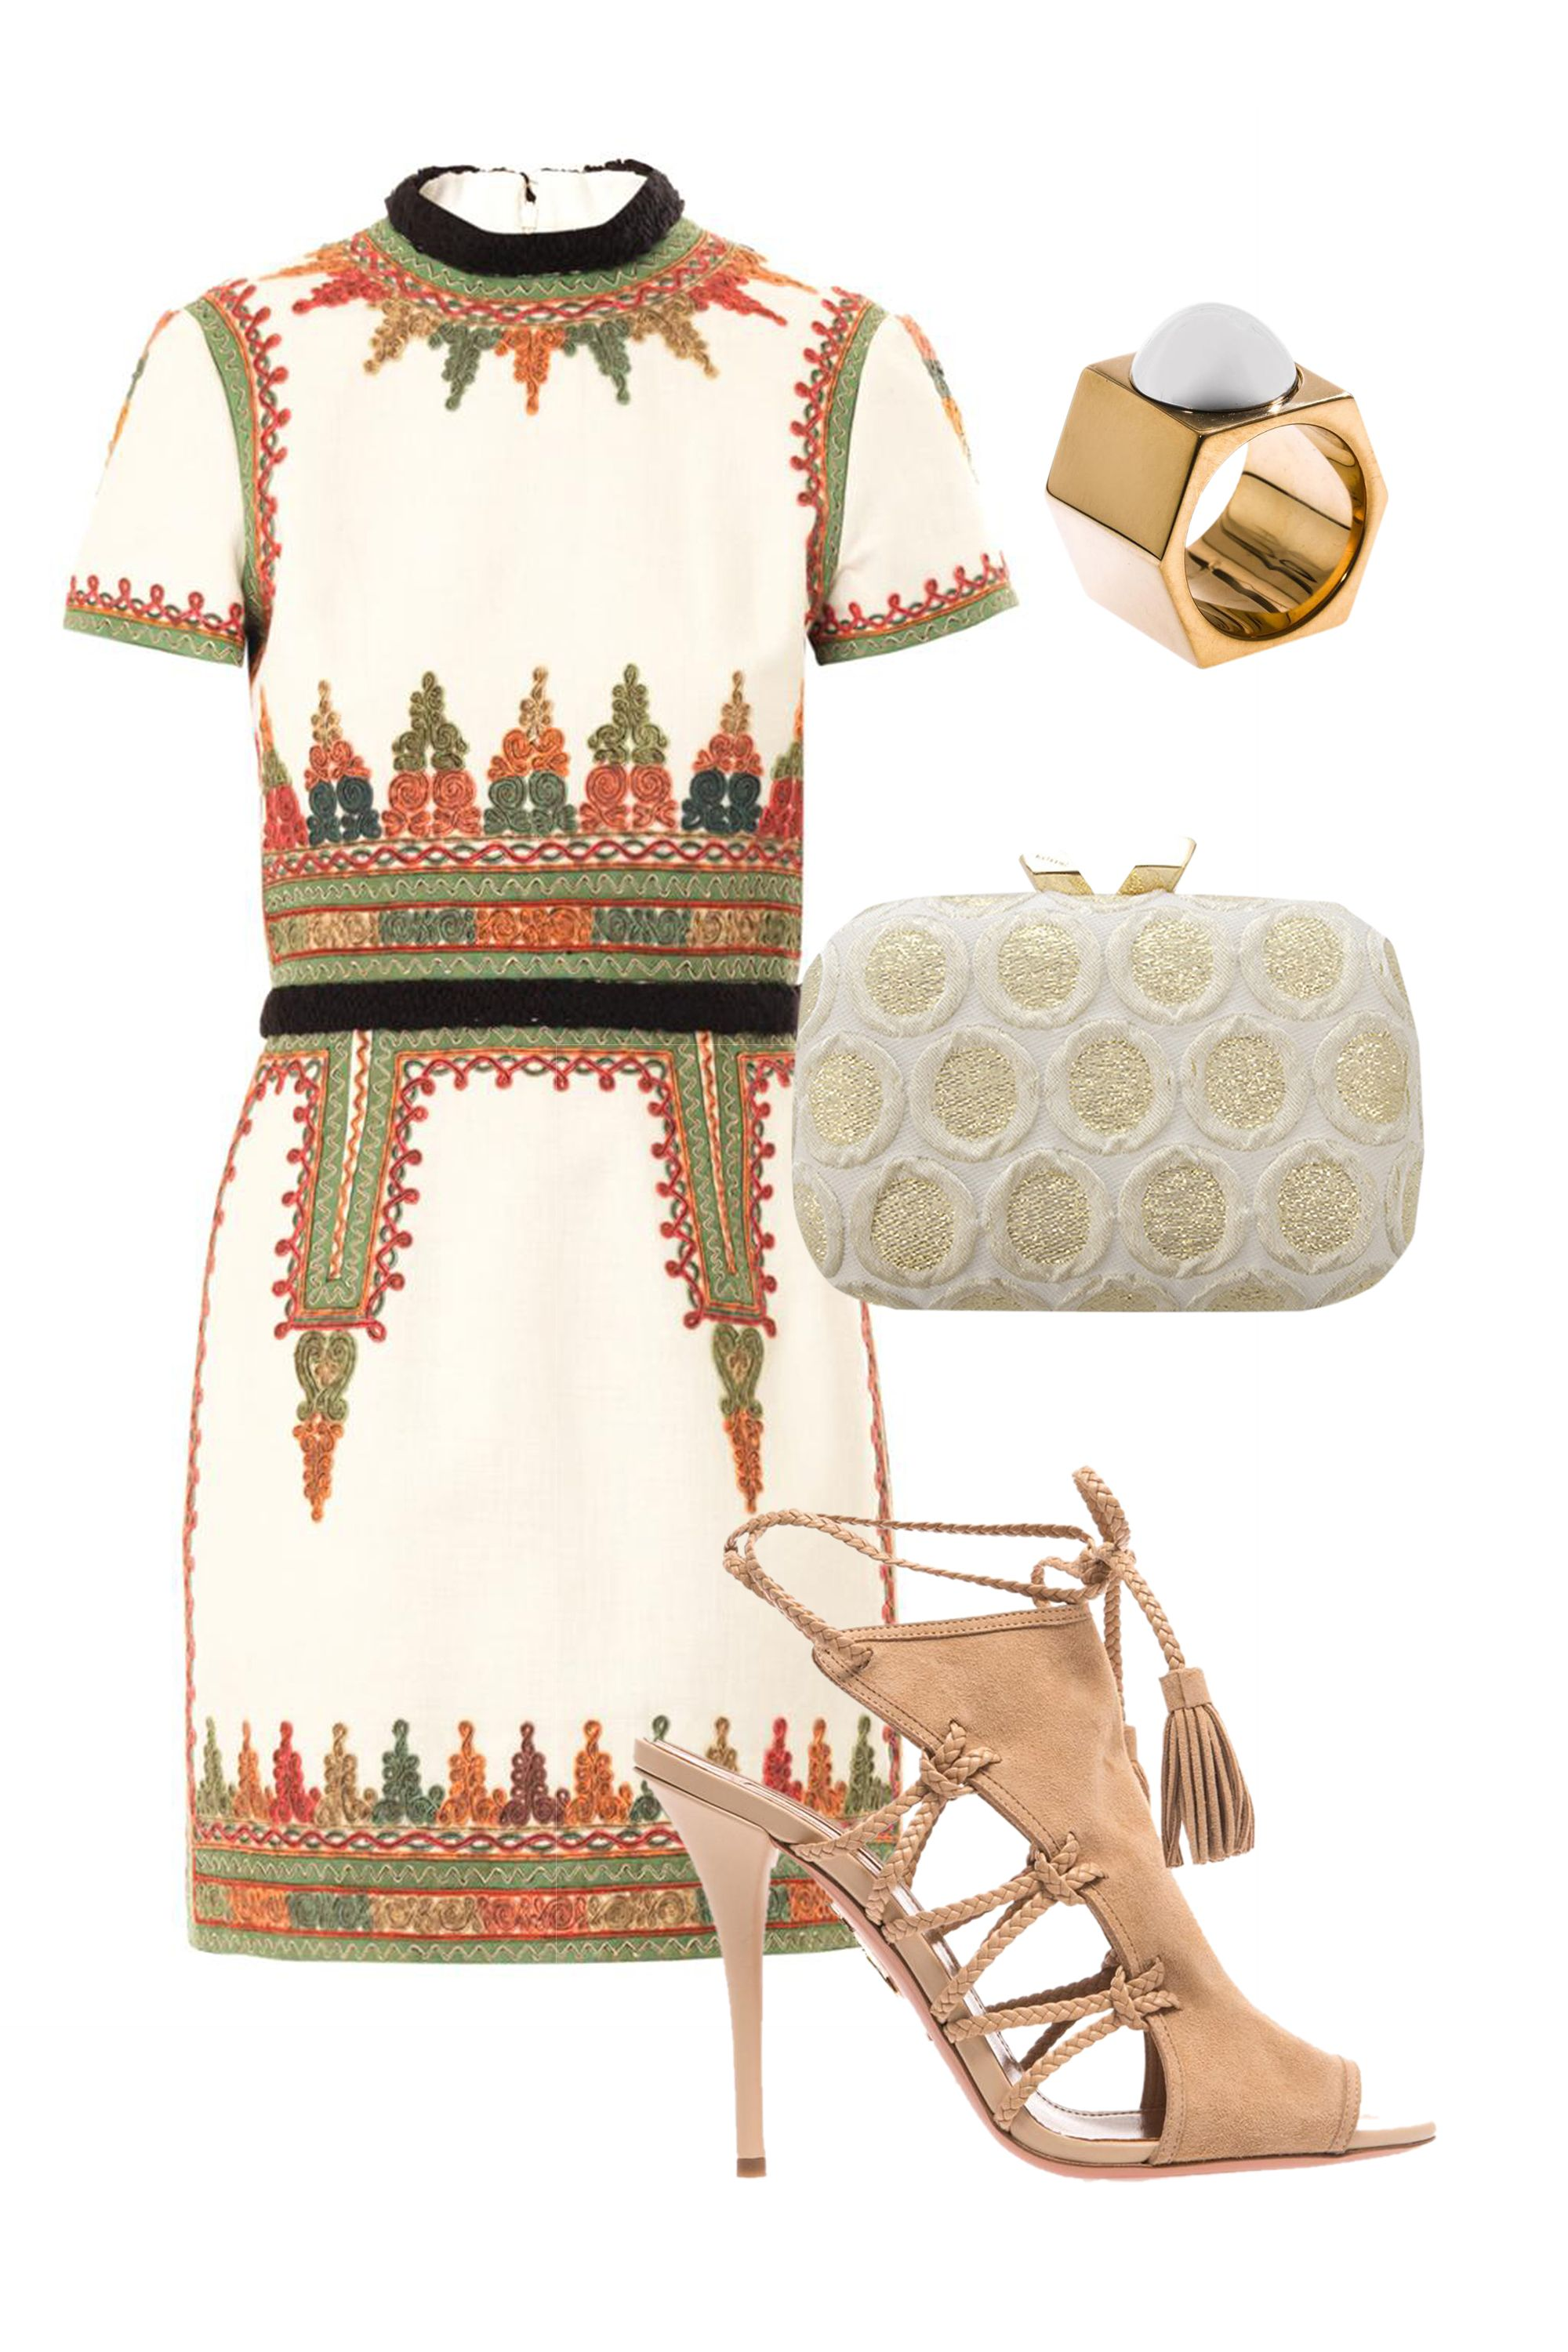 Dresses to wear to a destination wedding as a guest  The Best Dressed Guest What to Wear to a Spring Wedding